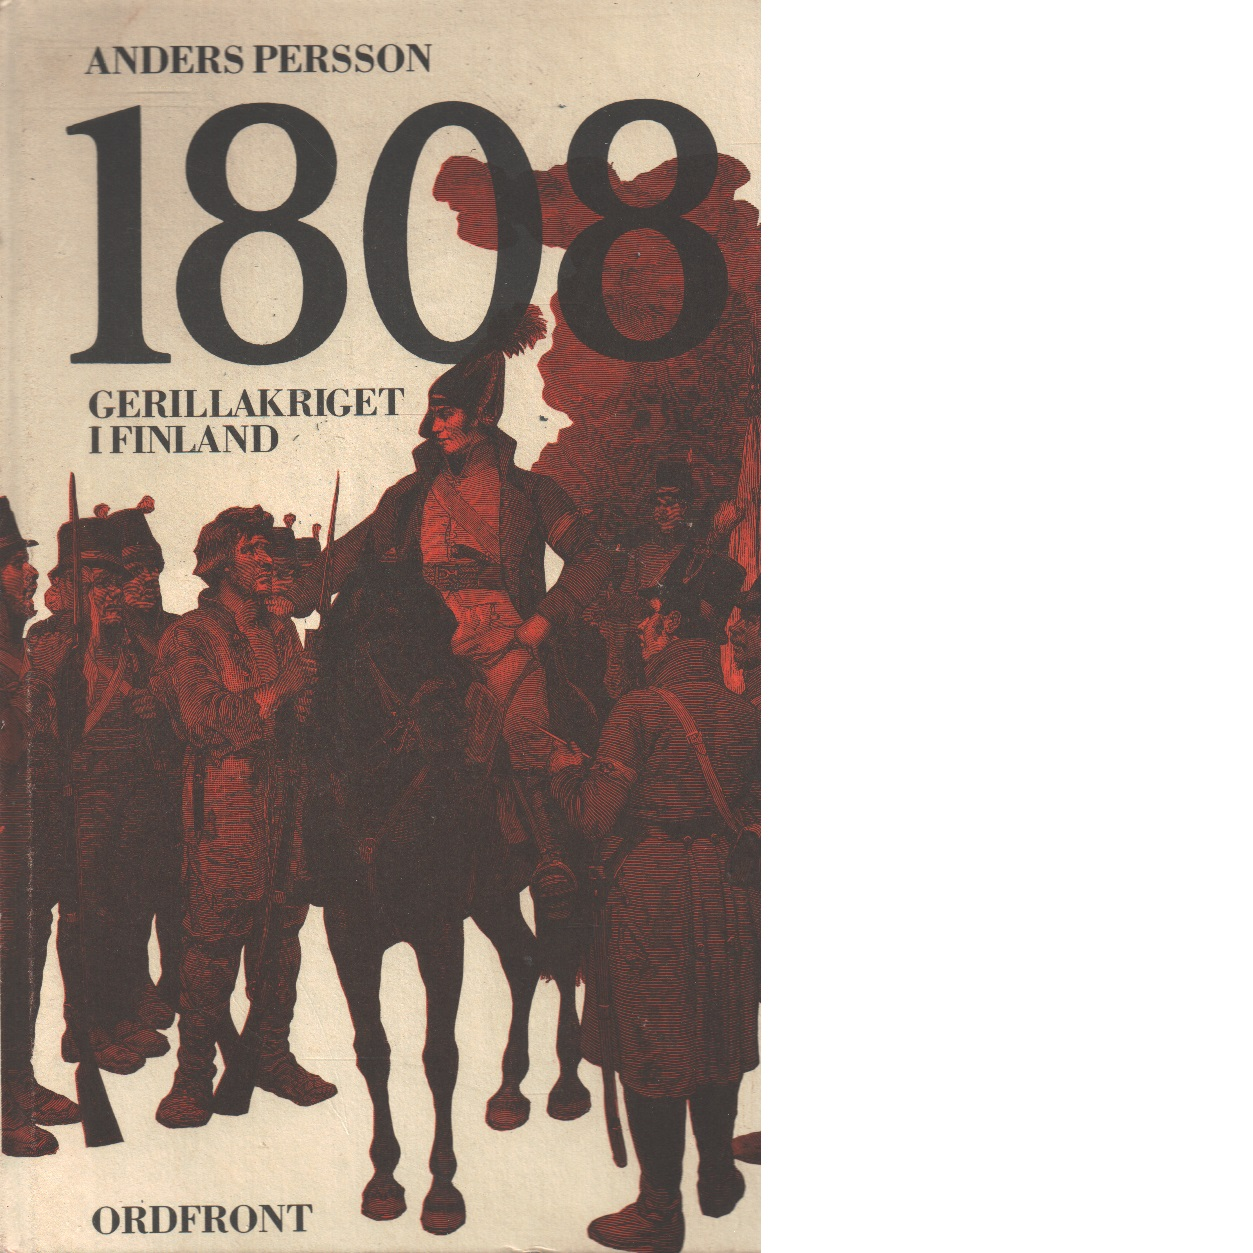 1808 : gerillakriget i Finland - Persson, Anders